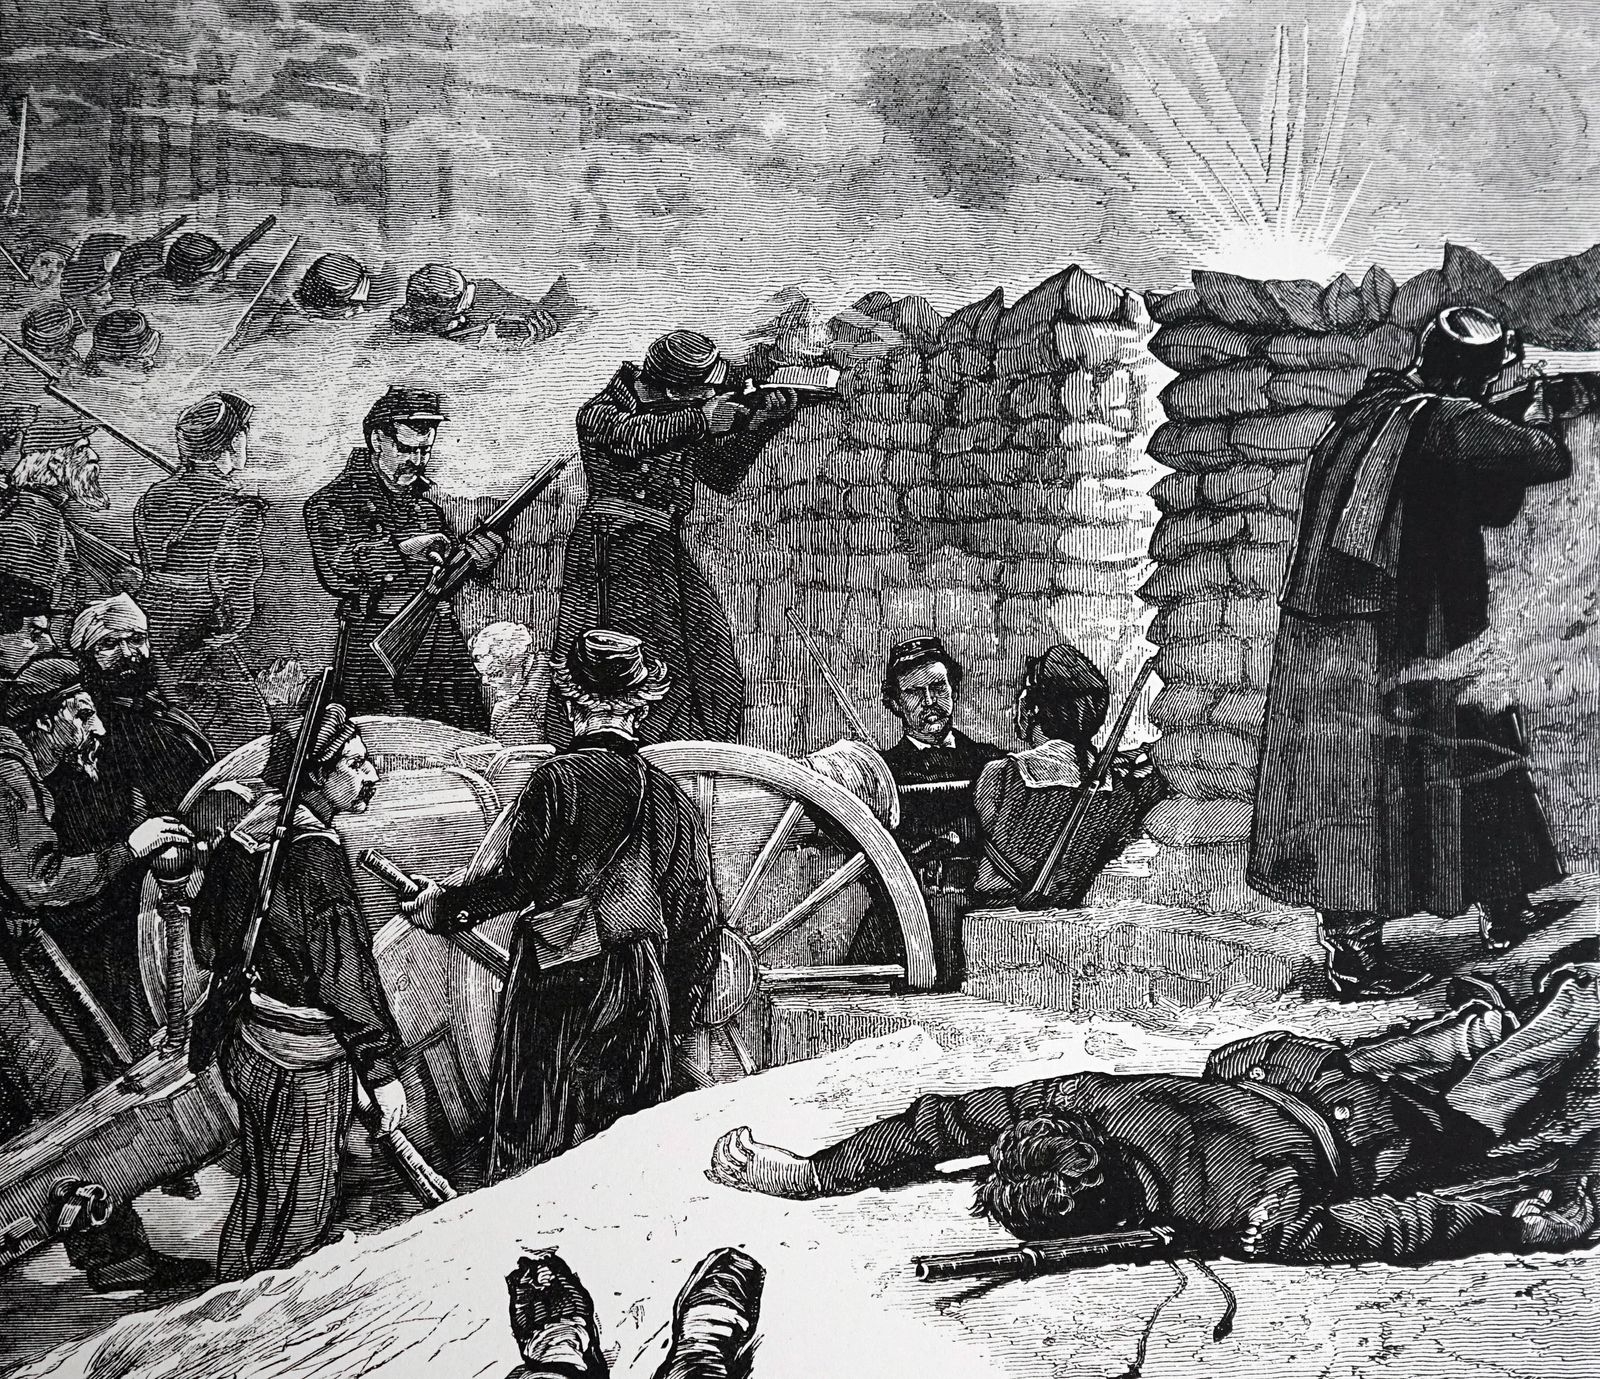 Paris commune Last stand of the communards at the barricades Dated June 1871 PUBLICATIONxINxGERxSUI